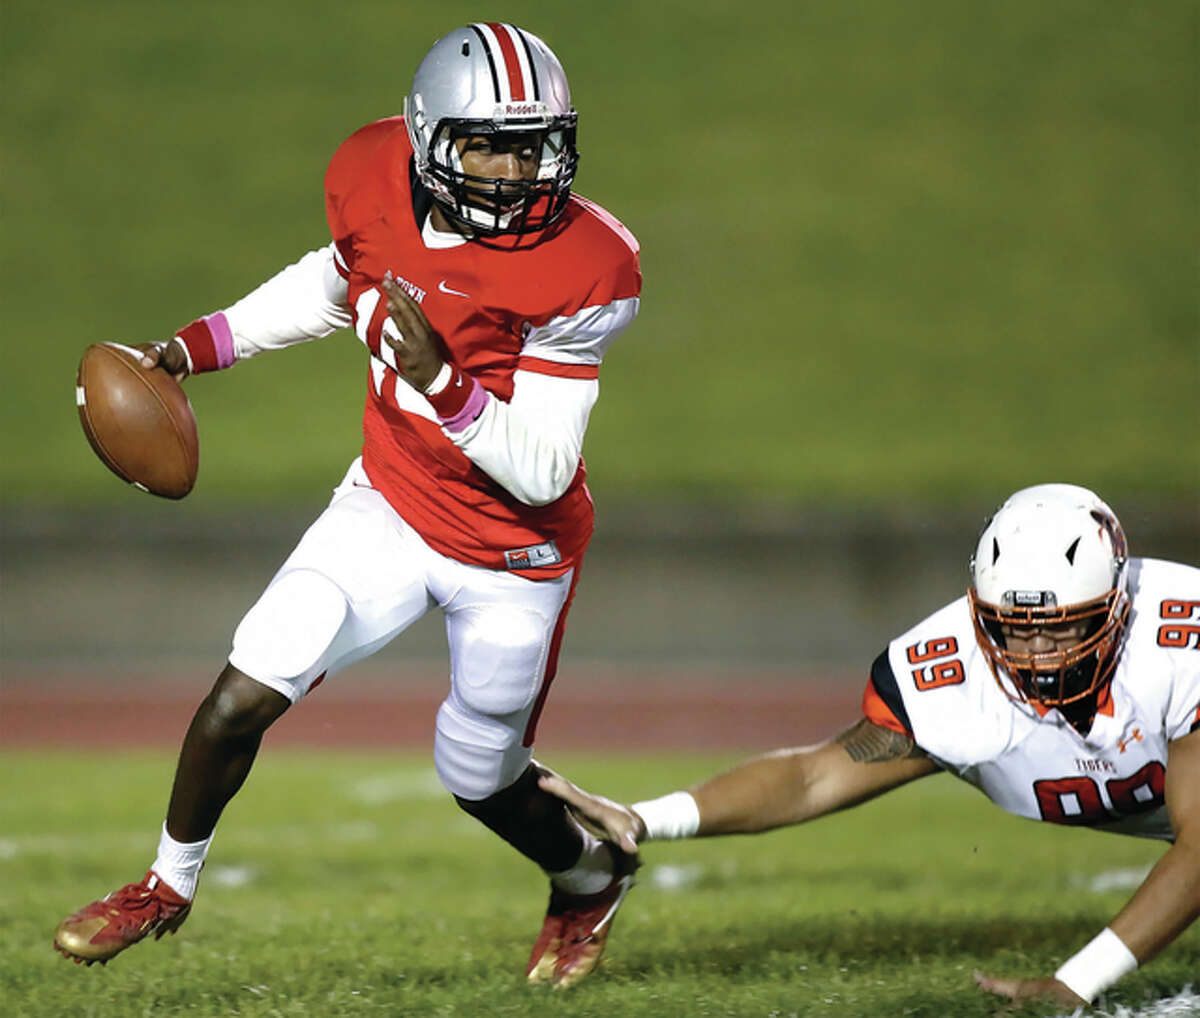 Alton quarterback Taylor Price (left) scrambles to get away from diving Edwardsville defensive end AJ Epenesa during Southwestern Conference football action Friday night at Public School Stadium in Alton.